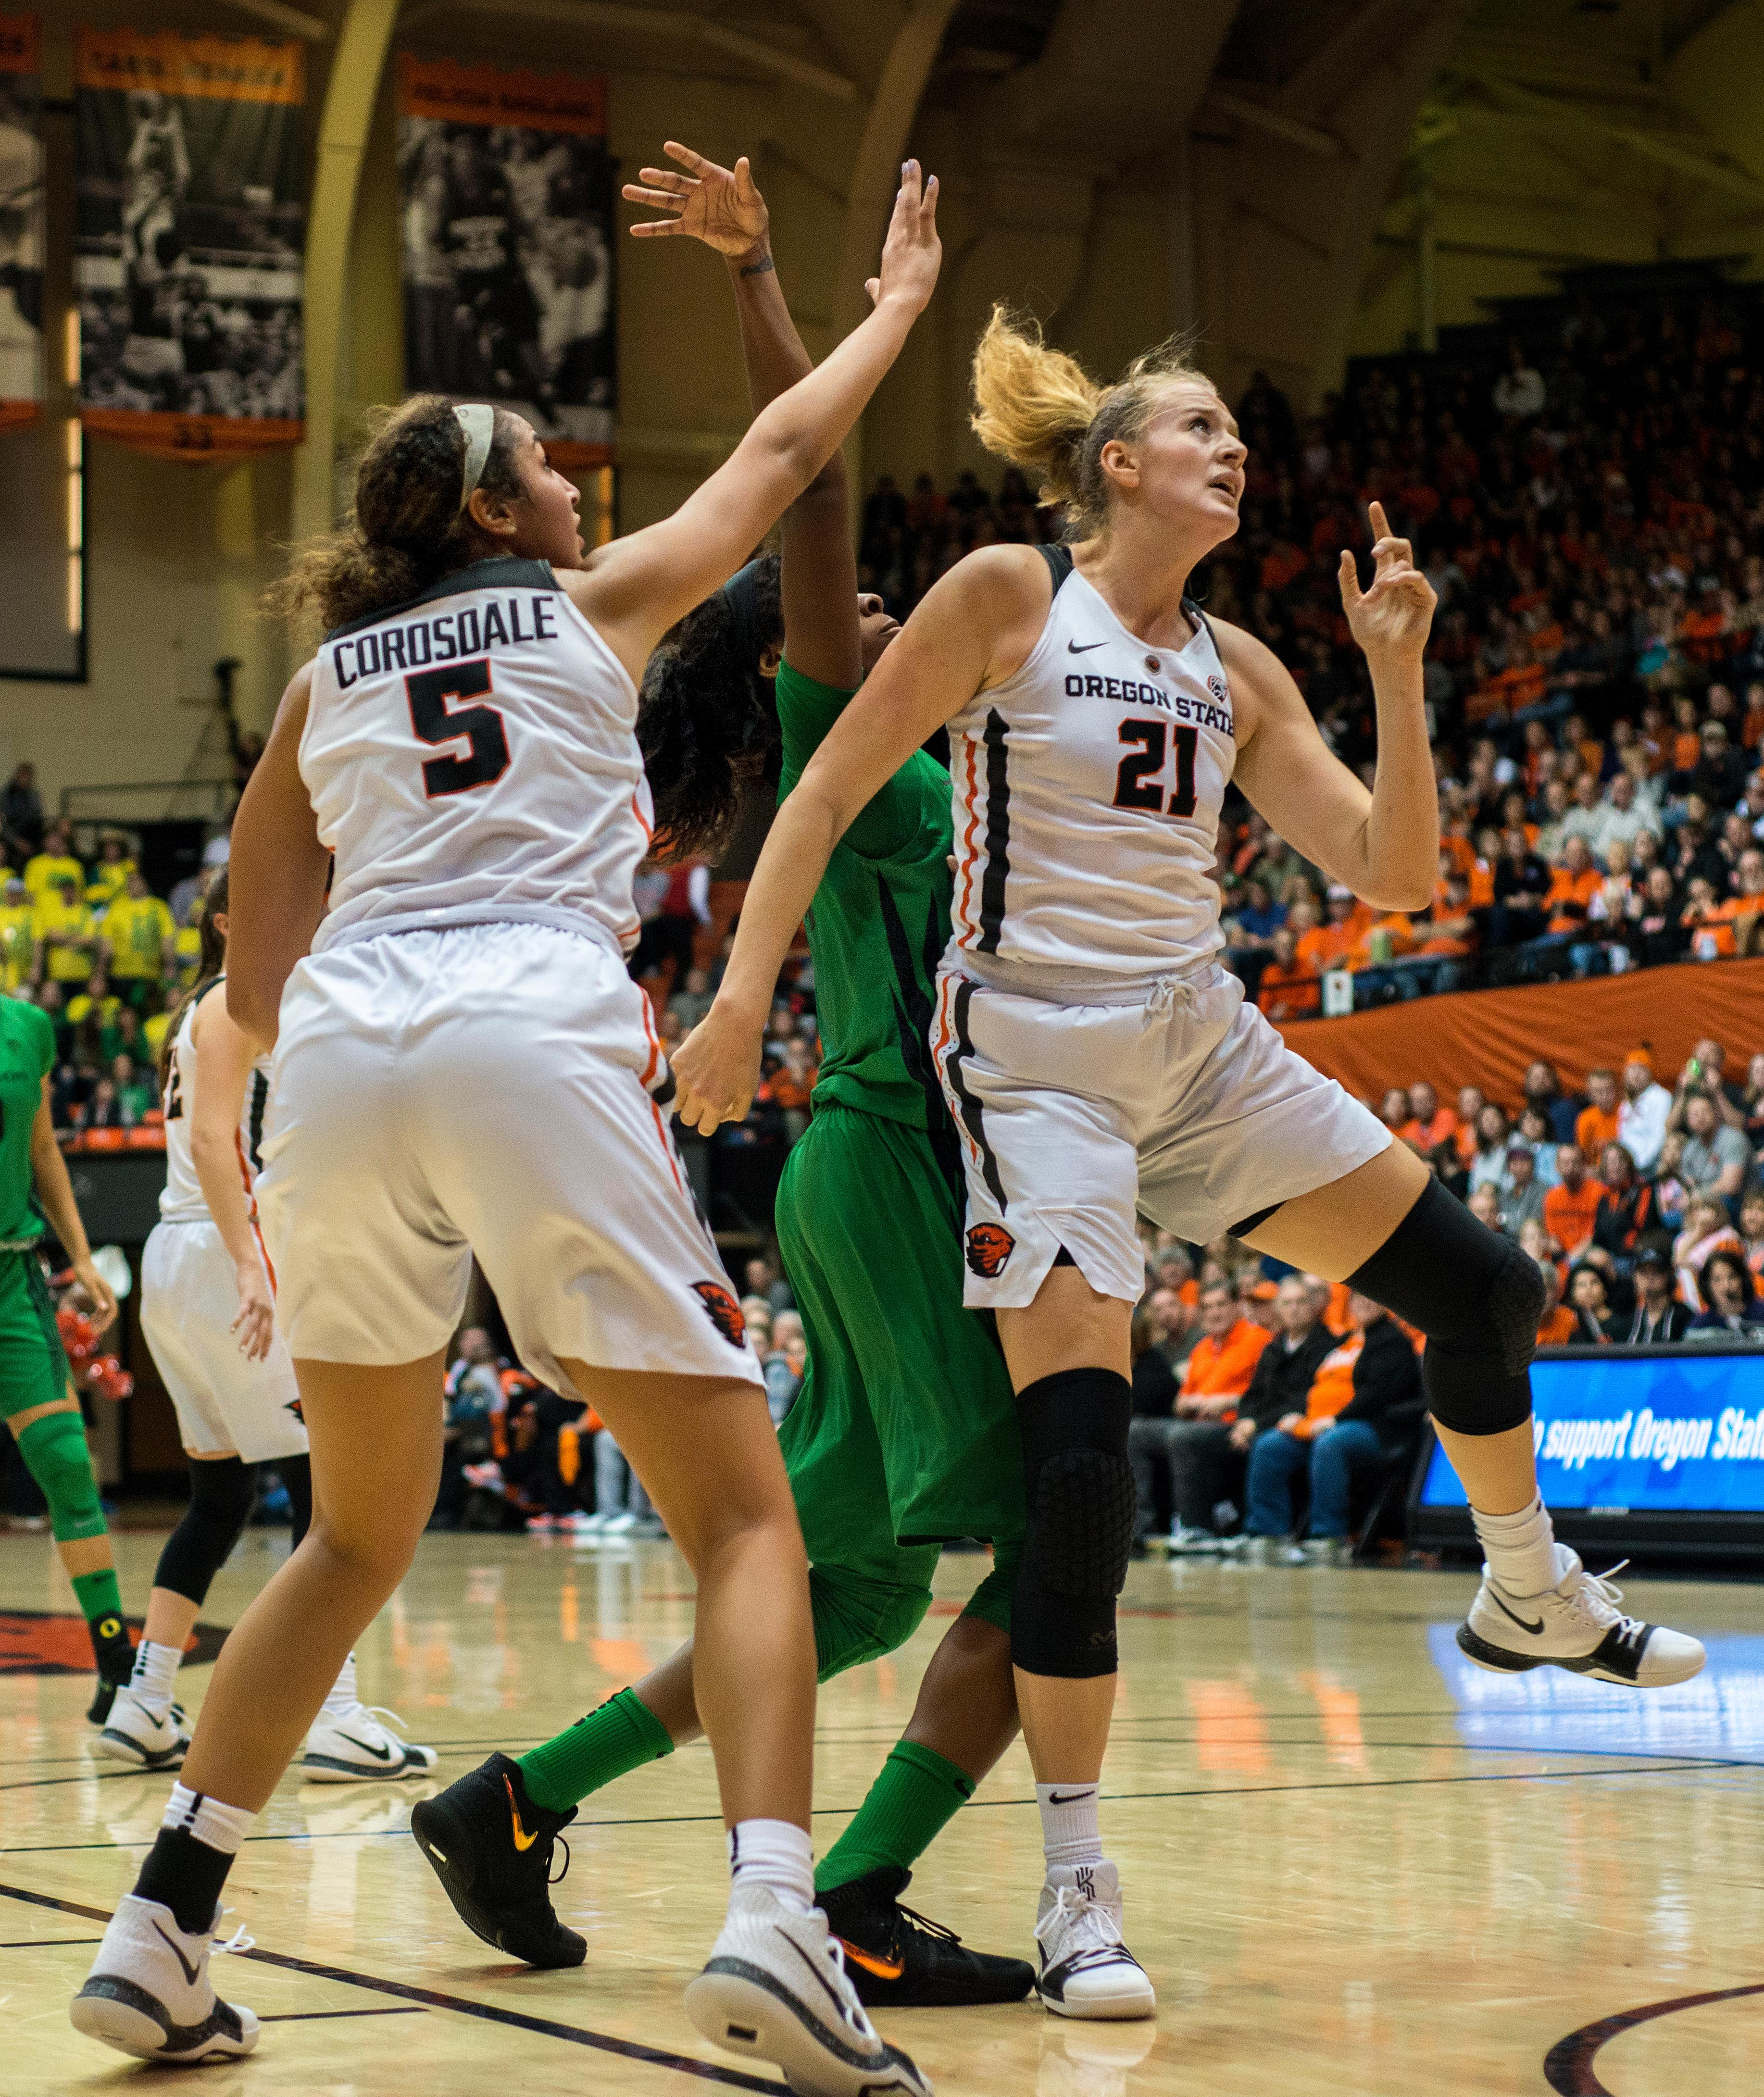 Oregon State Beavers forwards Marie Gülich (#21) and Taya Corosdale (#5) land from defending the Oregon Ducks offense.The Oregon Ducks were defeated by the Oregon State Beavers 85-79 on Friday night in Corvallis. Sabrina Ionescu scored 35 points and Ruthy Hebard added 24. The Ducks will face the Beavers this Sunday at 5 p.m. at Matthew Knight Arena. Photo by Abigail Winn, Oregon News Lab